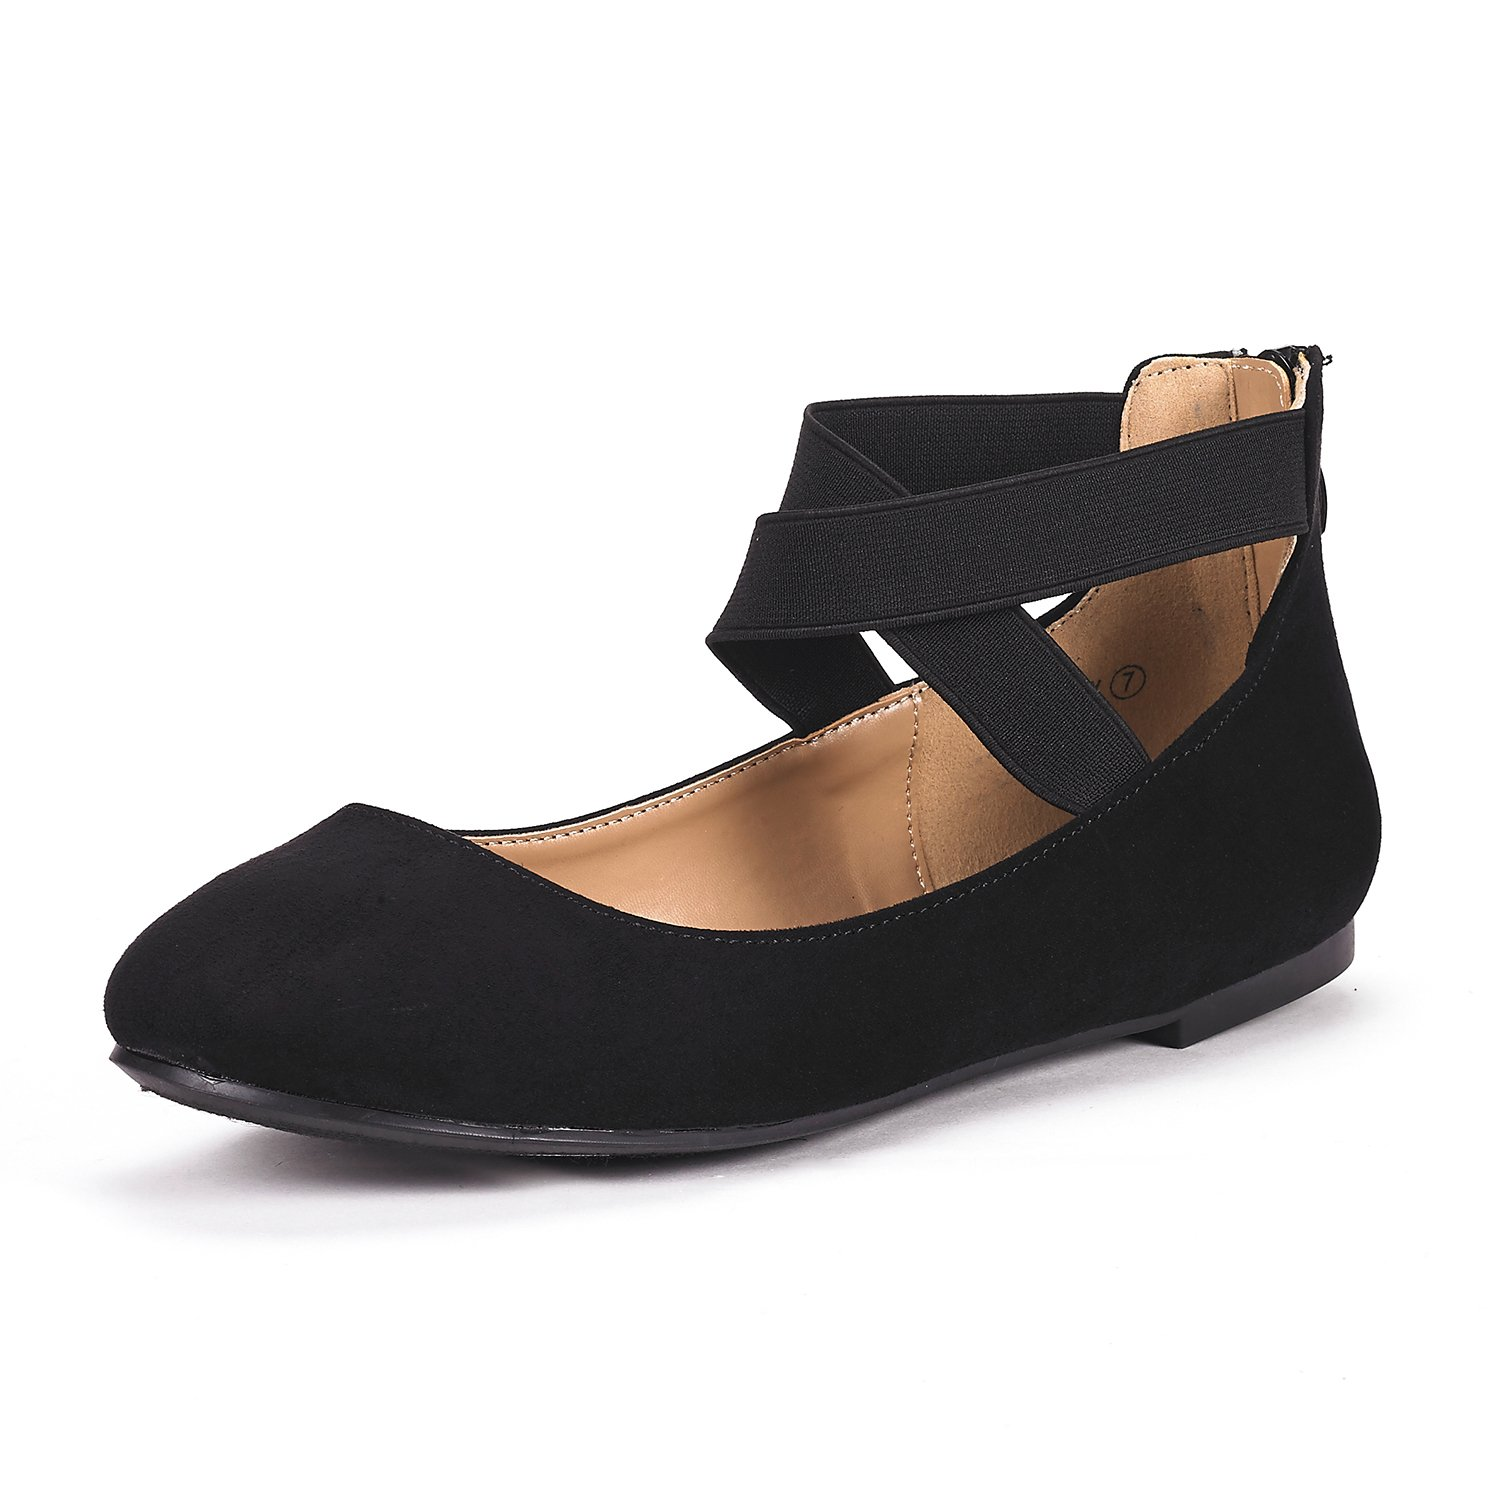 DREAM PAIRS Women's Sole_Stretchy Black Fashion Elastic Ankle Straps Flats Shoes Size 9 M US